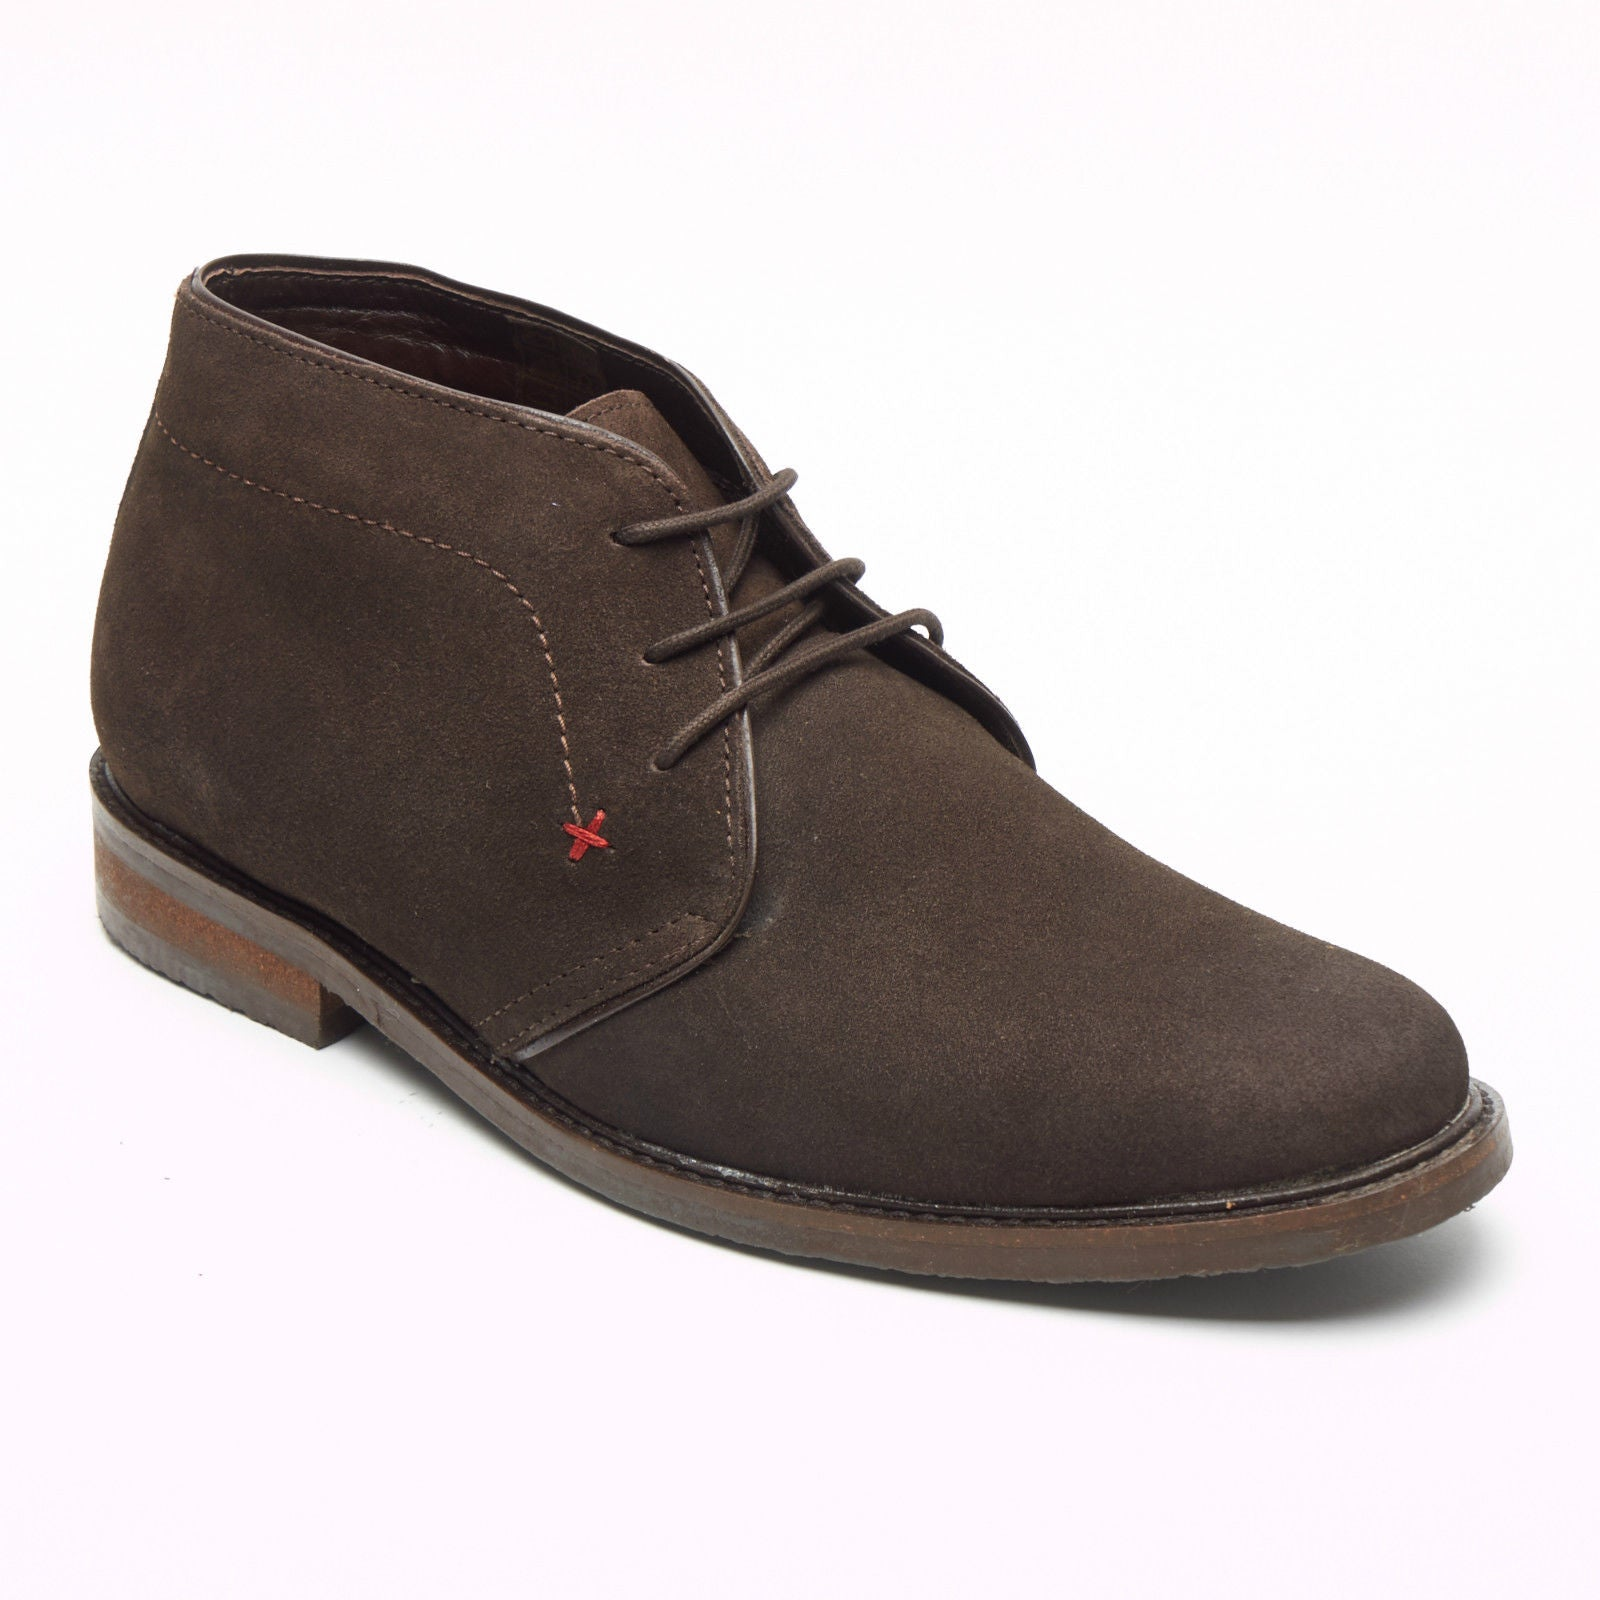 Mens Suede Desert Boots - SF-5151 Brown